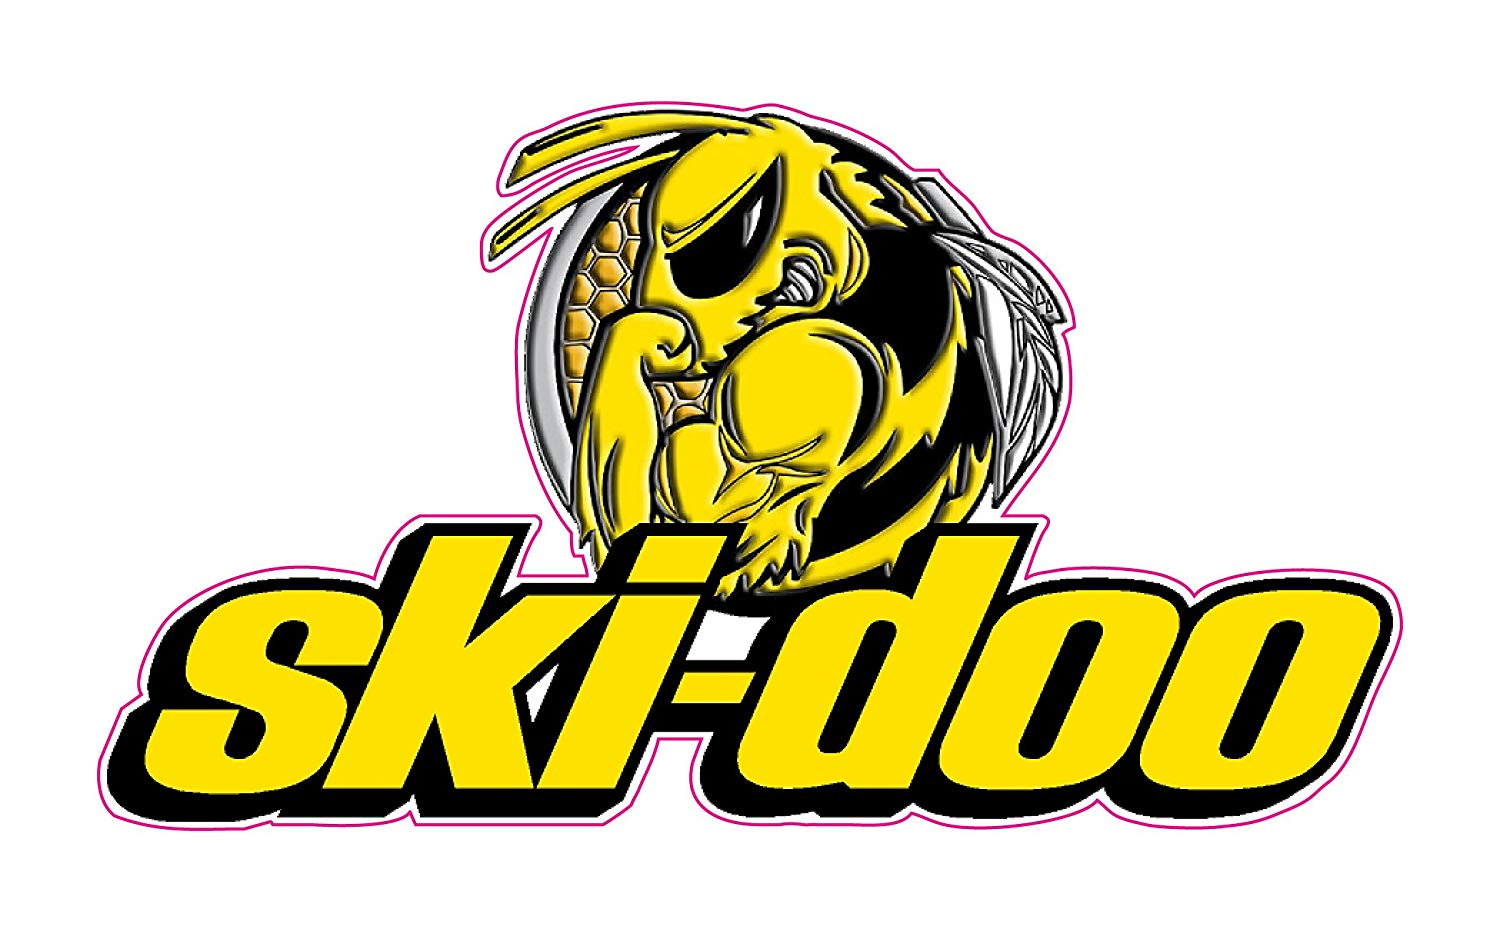 Ski Doo Bee Decal 6\